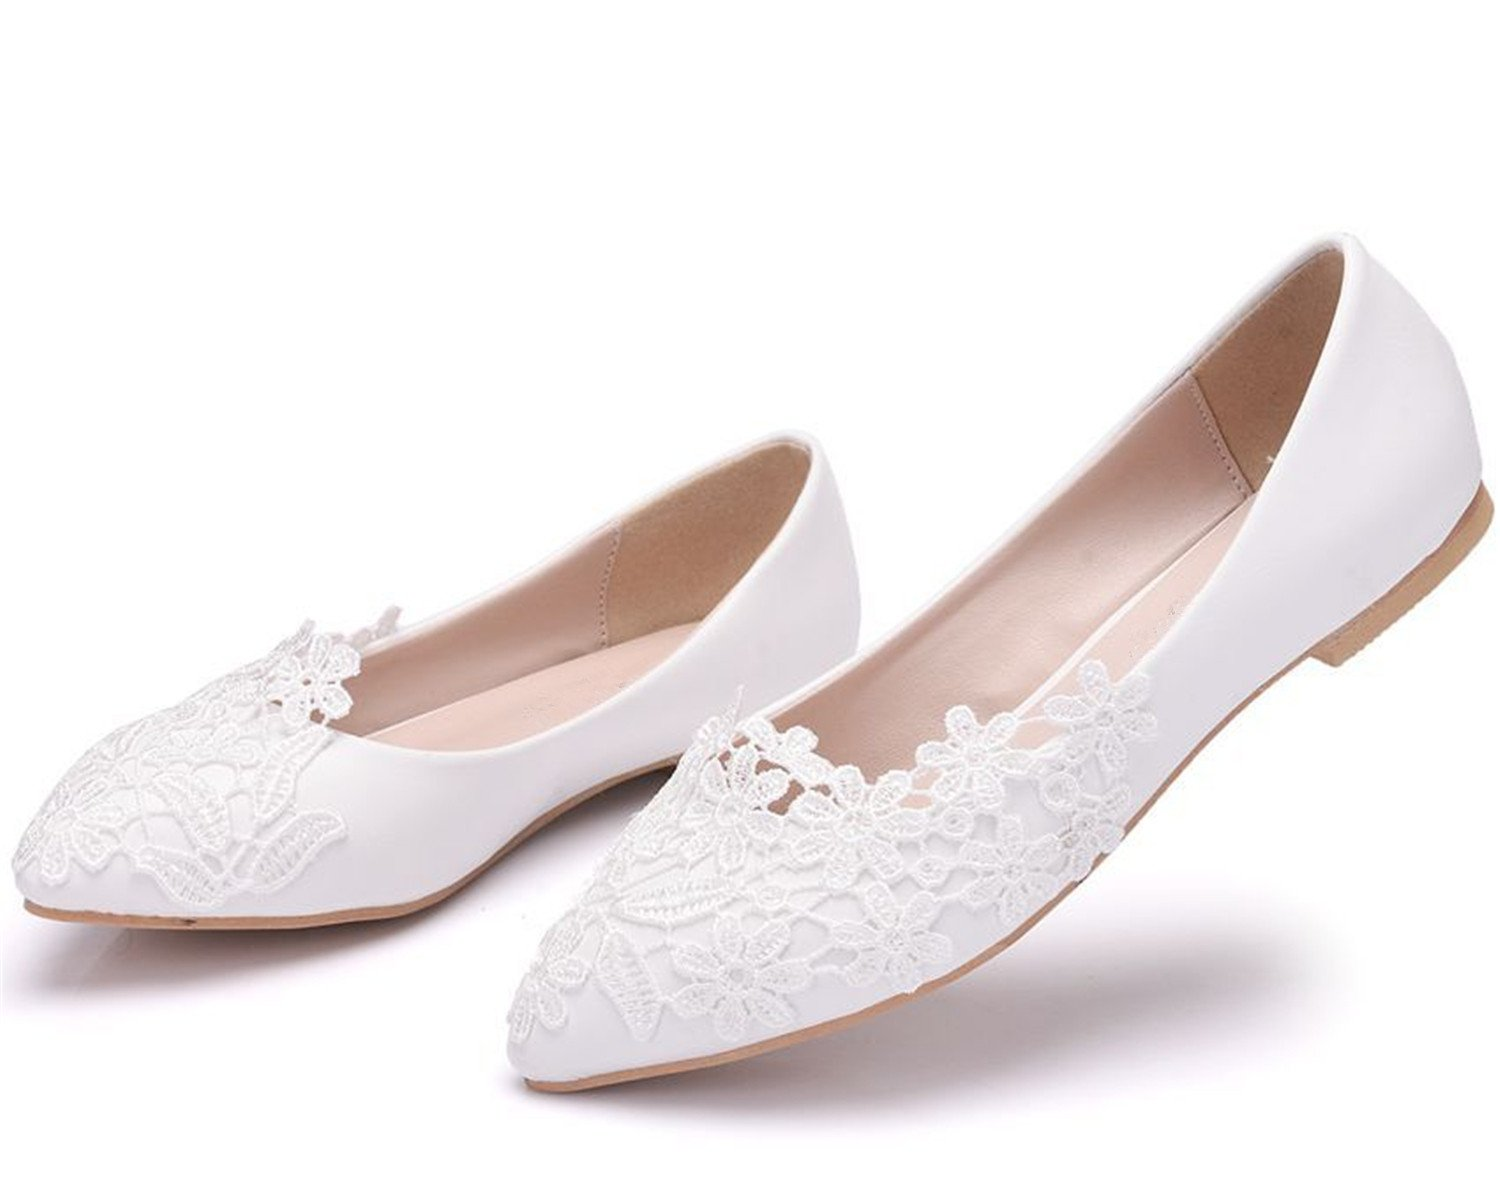 Aiybao White Lace Wedding Shoes for Bride Comfort Bride Shoes Wedding Bridal Dresses B07BGYZ9B6 10 B(M) US|Lace